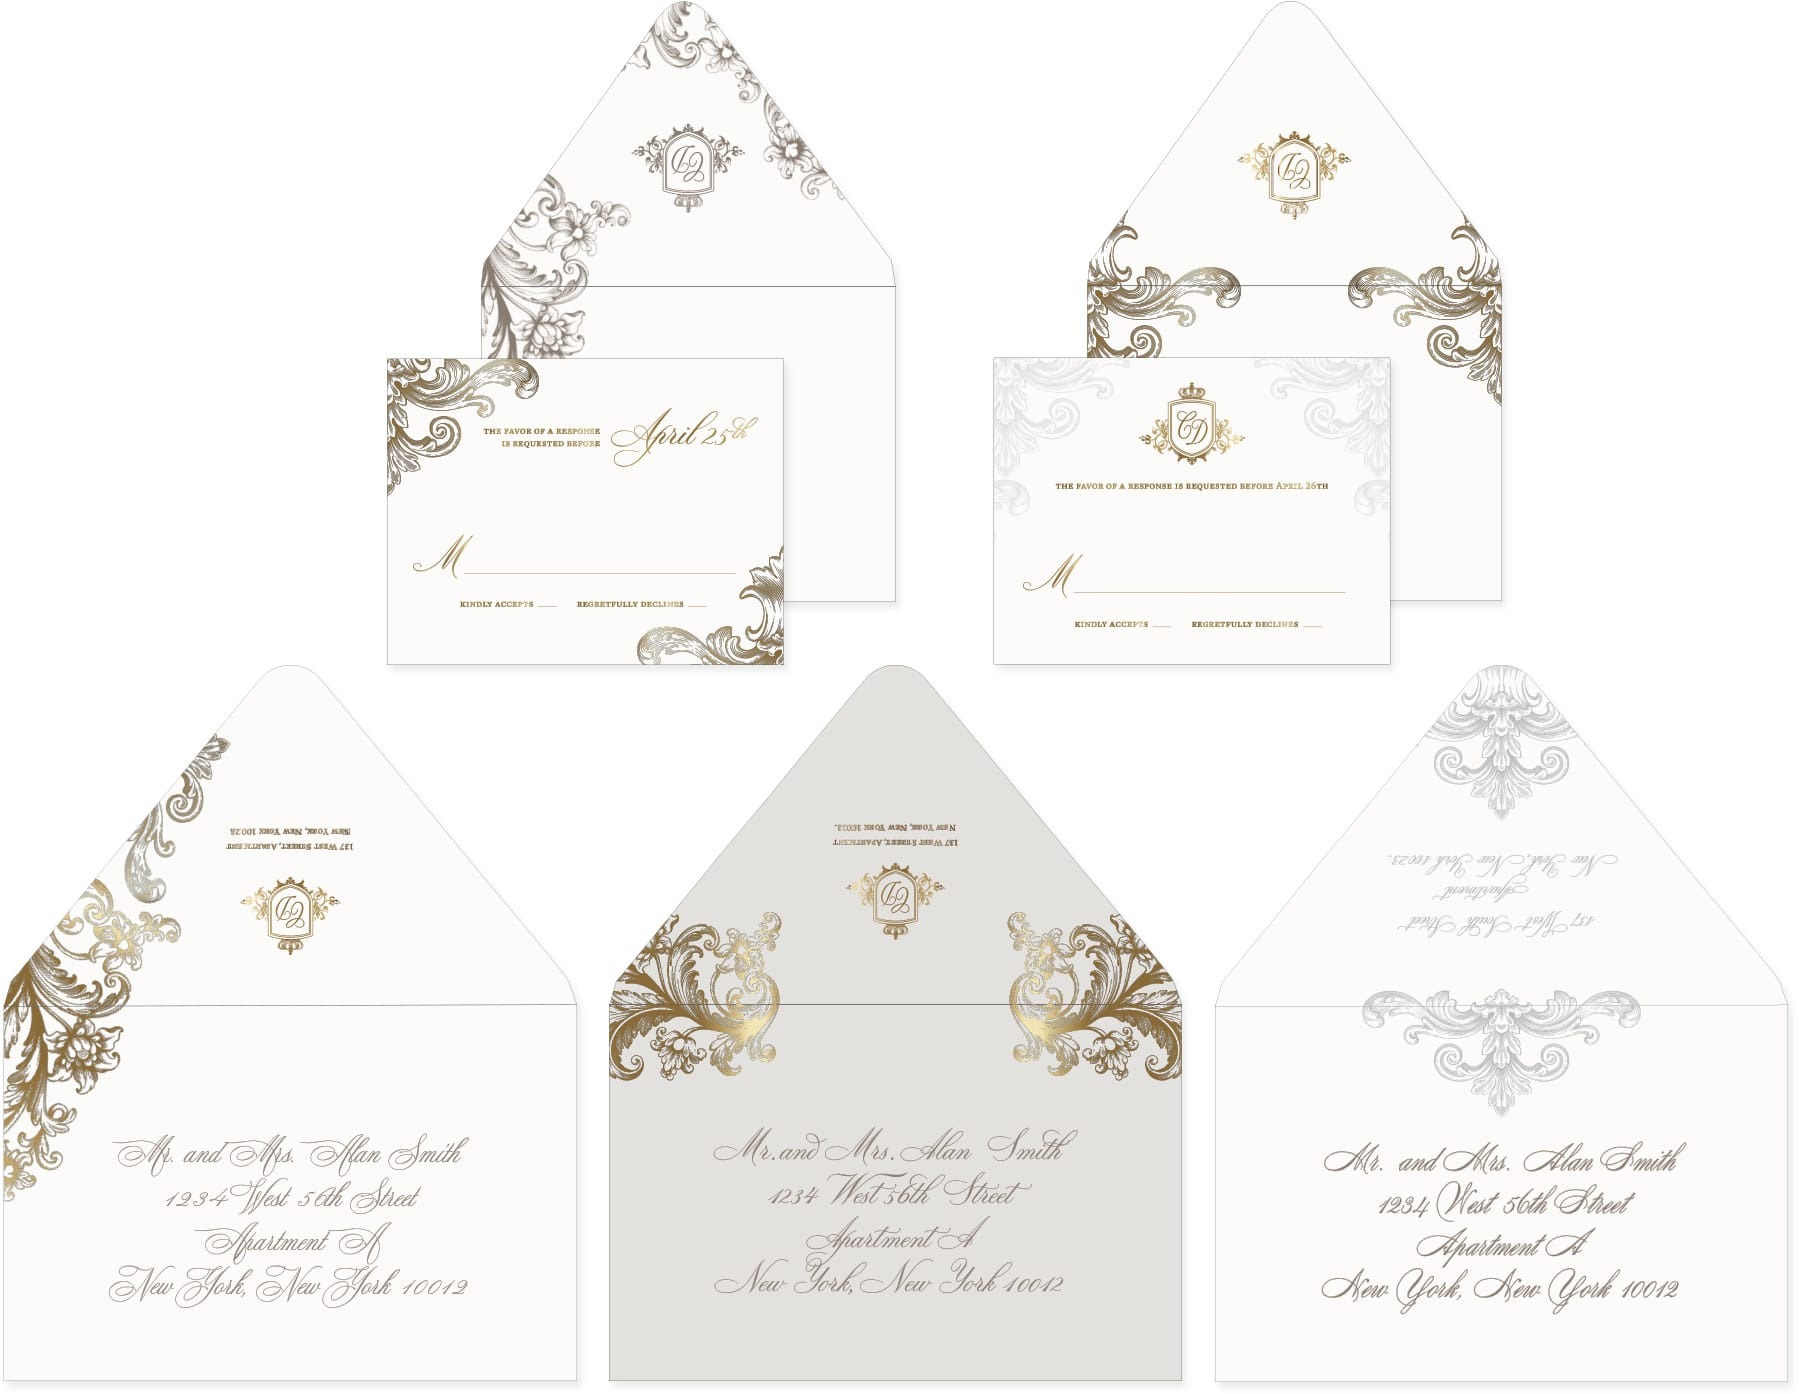 Envelope designs and reply cards